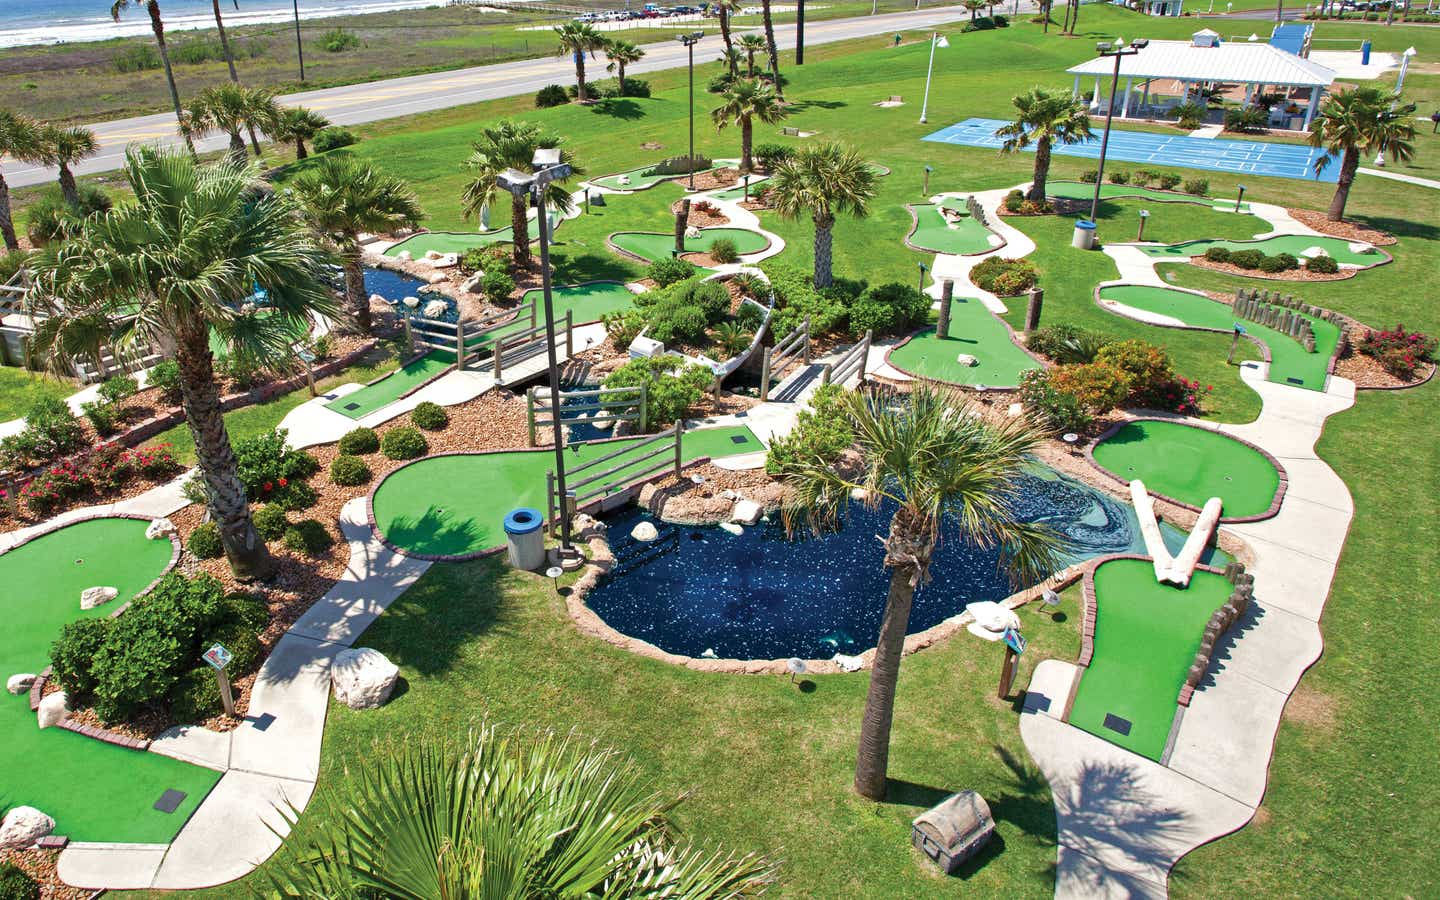 Aerial view of outdoor mini golf course at Galveston Seaside Resort.